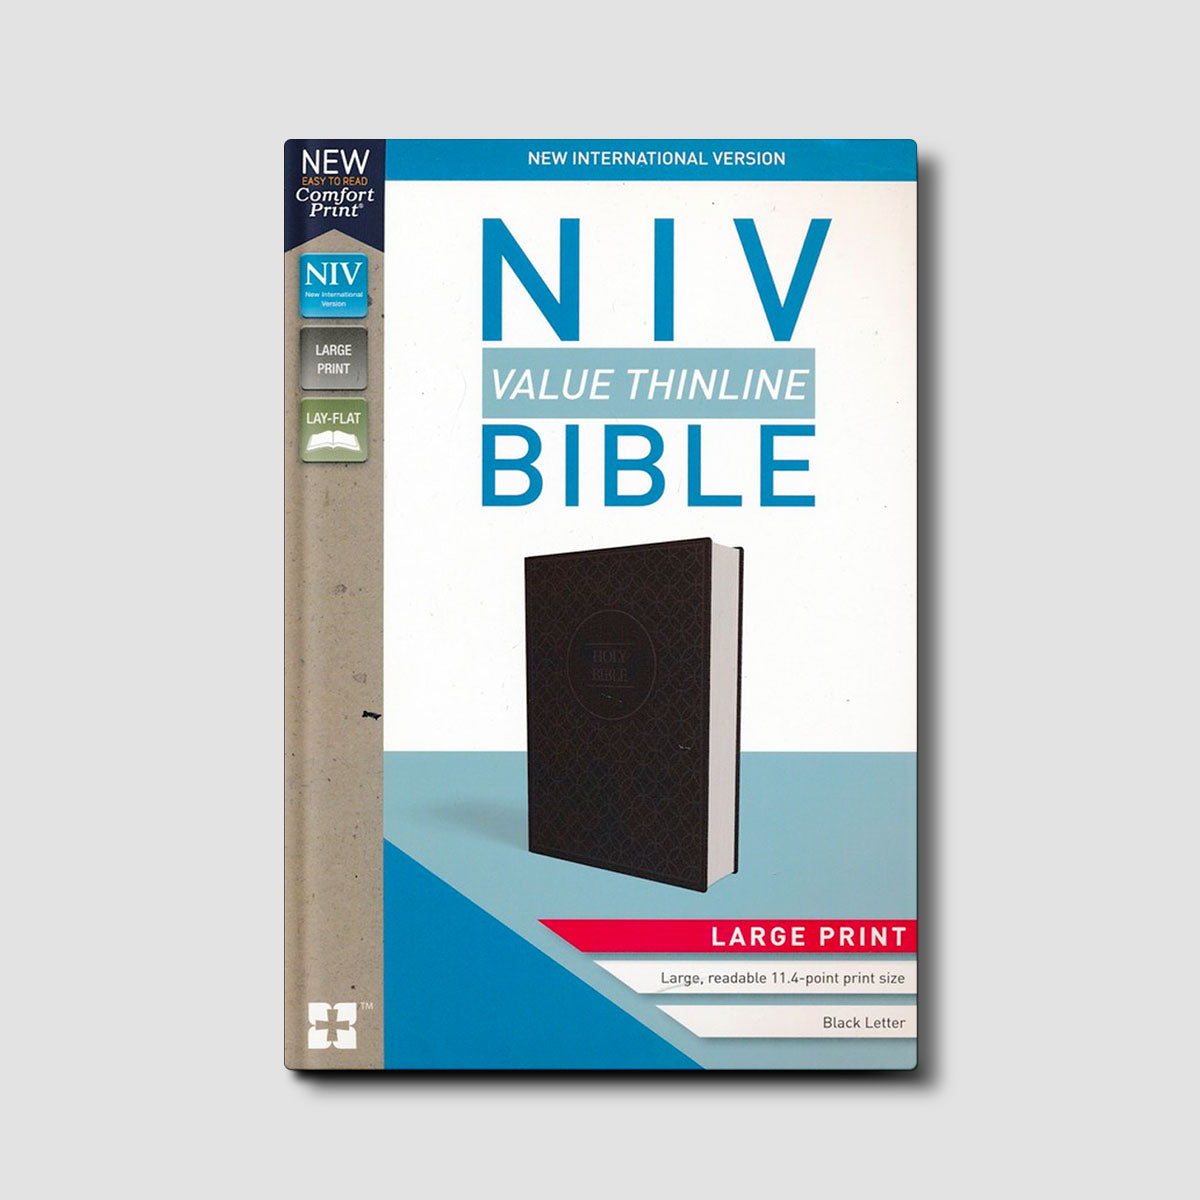 NIV Value Thinline Large Print Bible Black